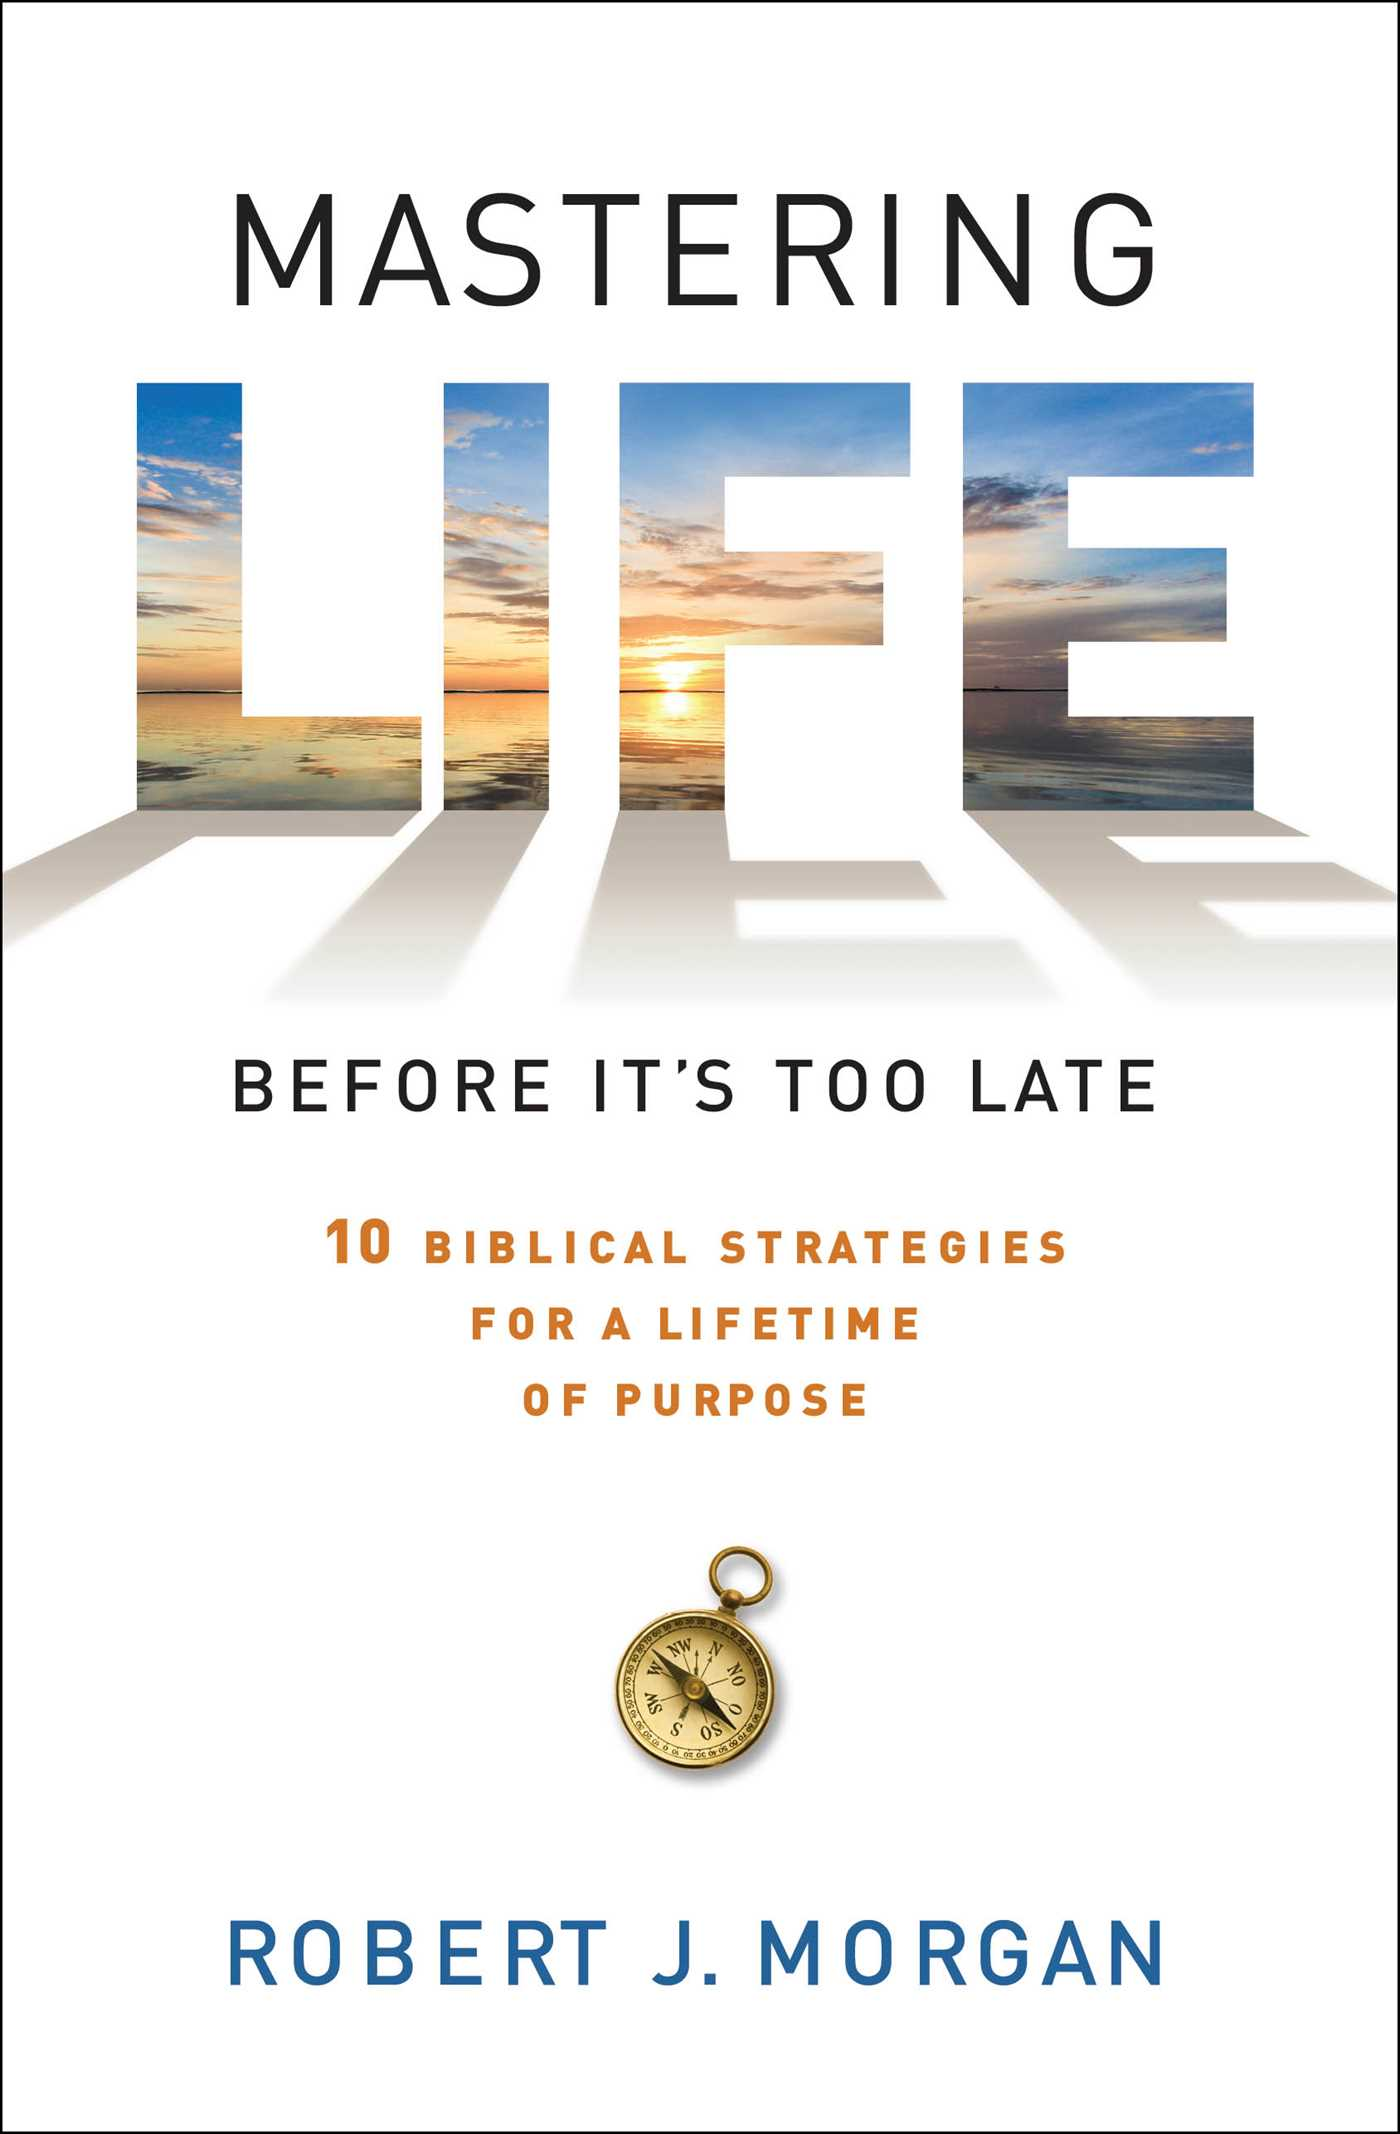 Book Review: Mastering Life before its too late.  Robert J. Morgan